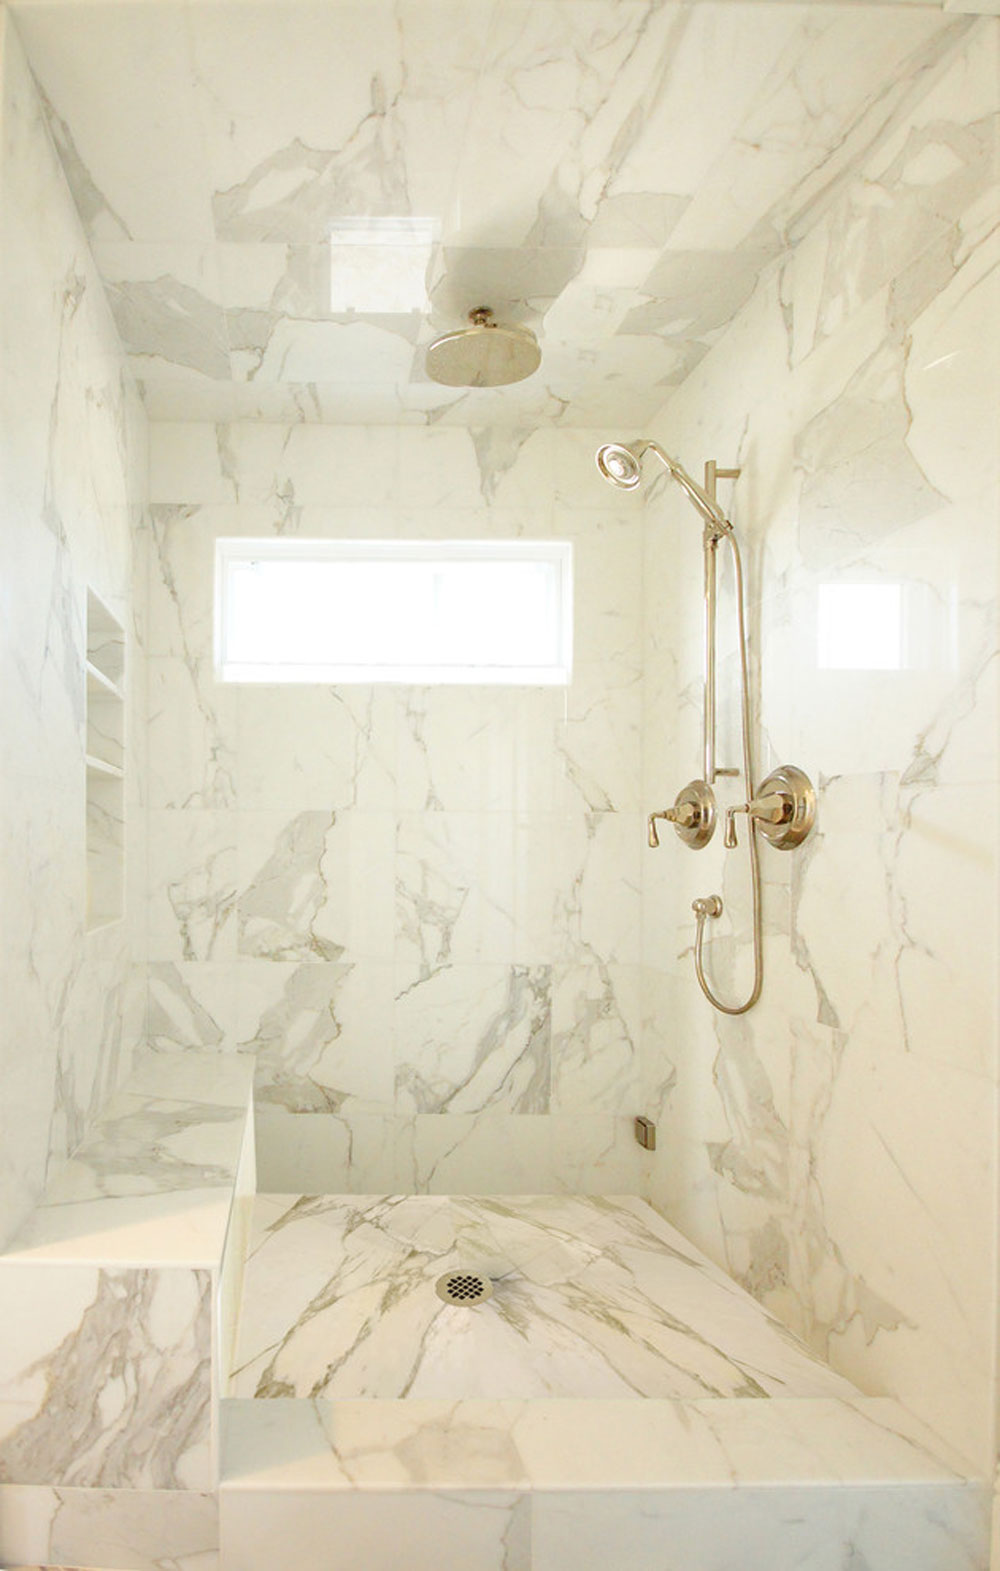 Master-shower-by-Courtney-Blanton-Interiors-CID shower niche ideas and best practices for your bathroom